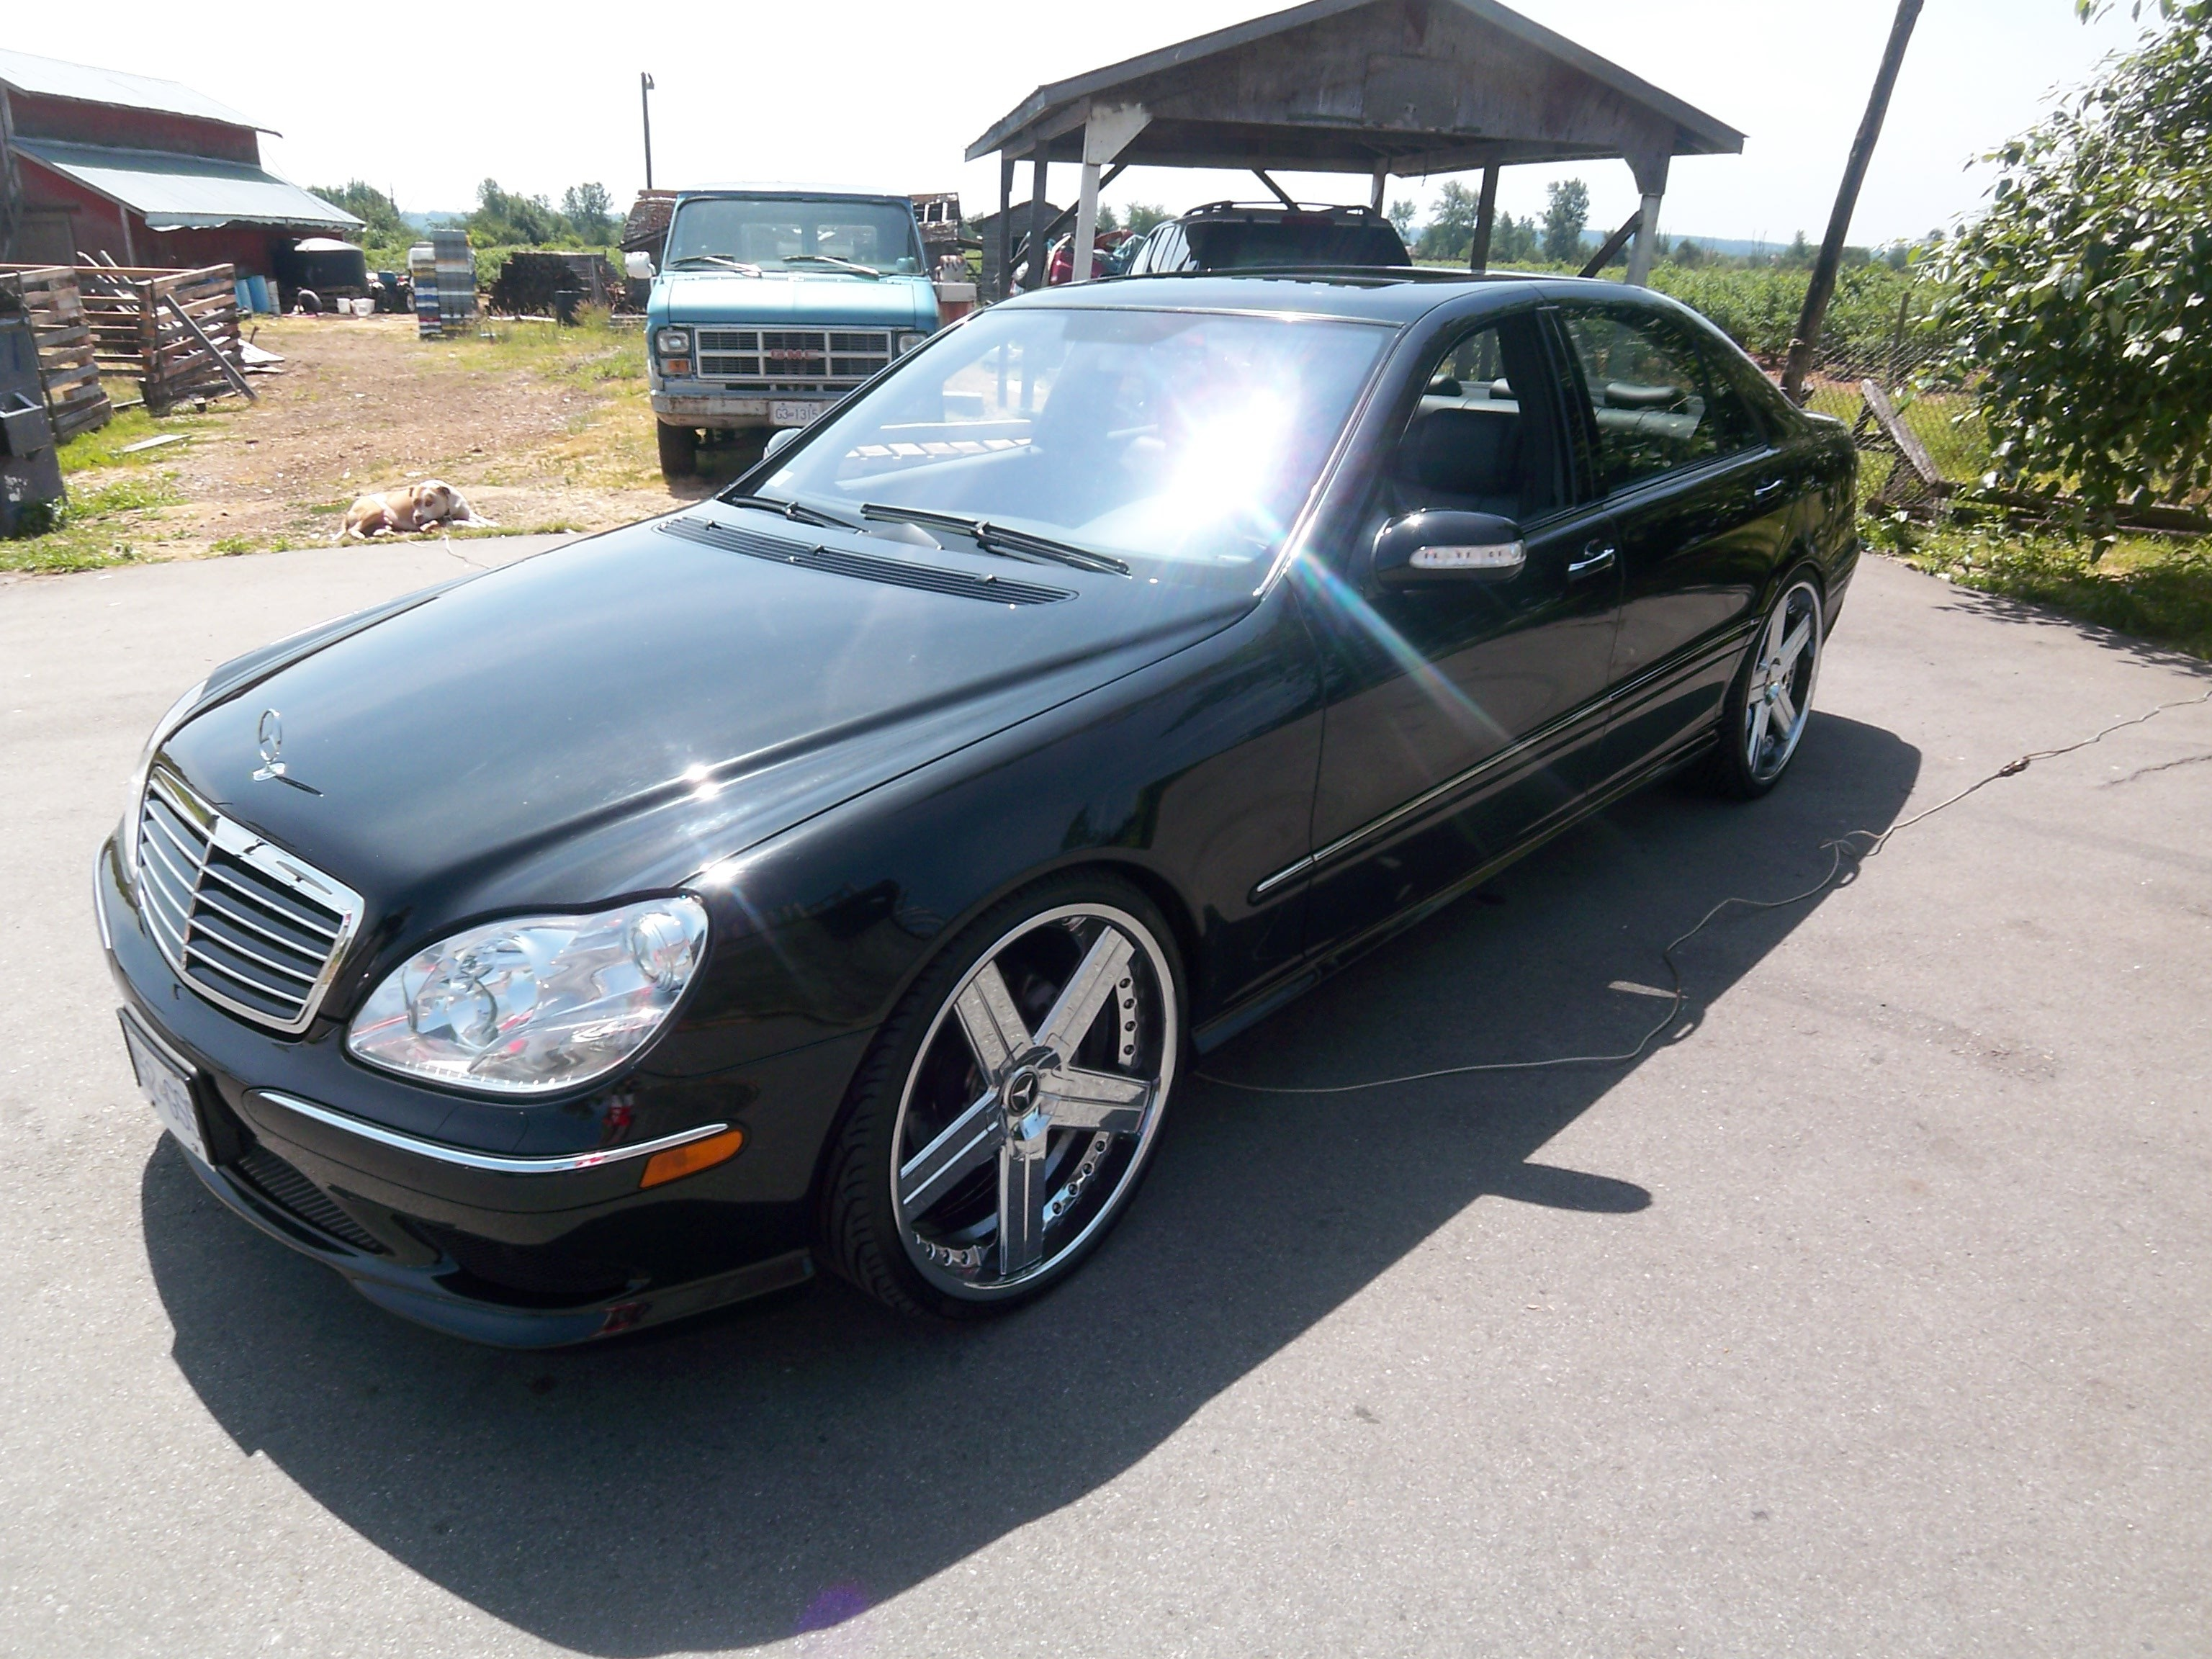 renee04benz 2004 mercedes benz s class specs photos modification info at cardomain. Black Bedroom Furniture Sets. Home Design Ideas